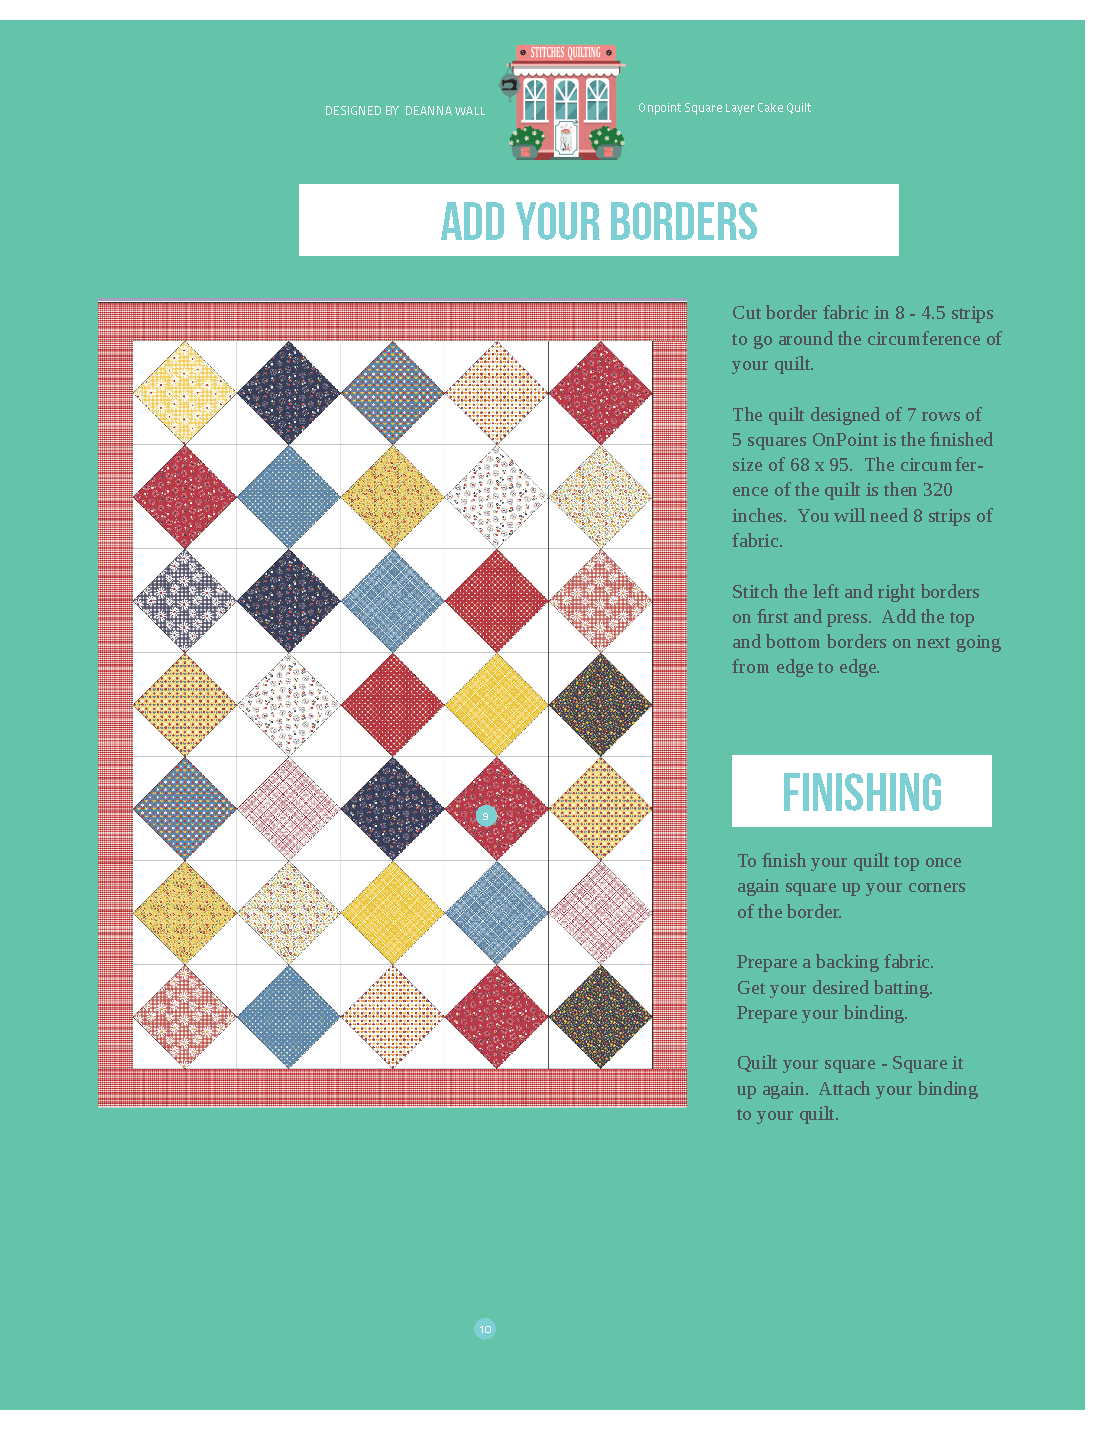 Add a border to your quilt top with these step by step instructions.